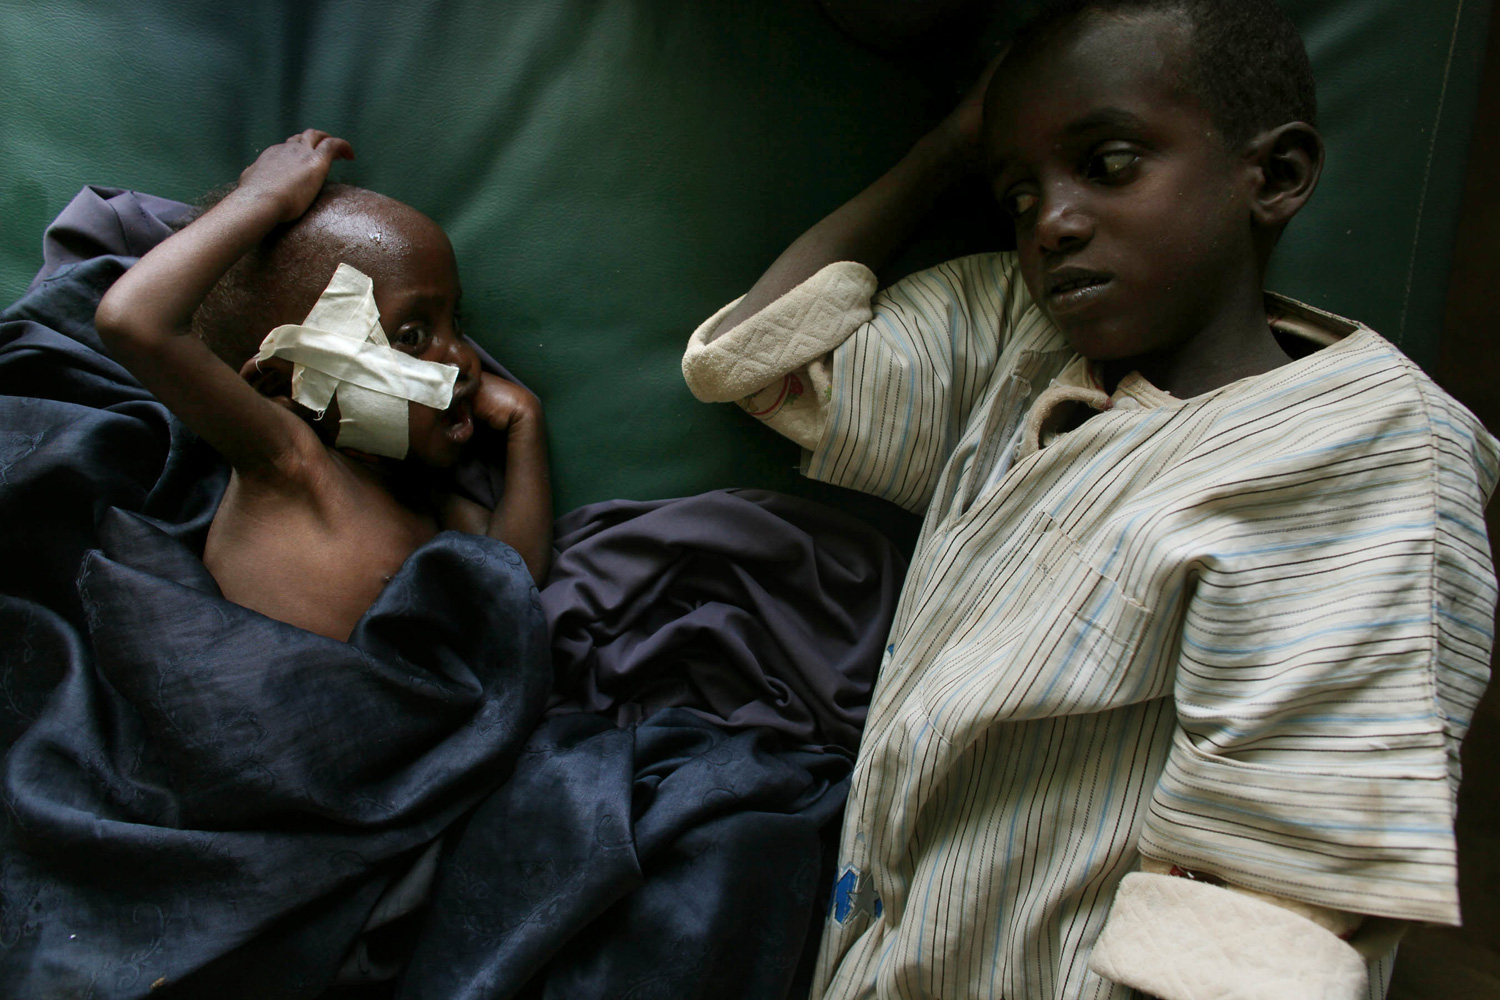 A young boy watches over his malnourished brother in a medical clinic run by Doctors Without Borders.